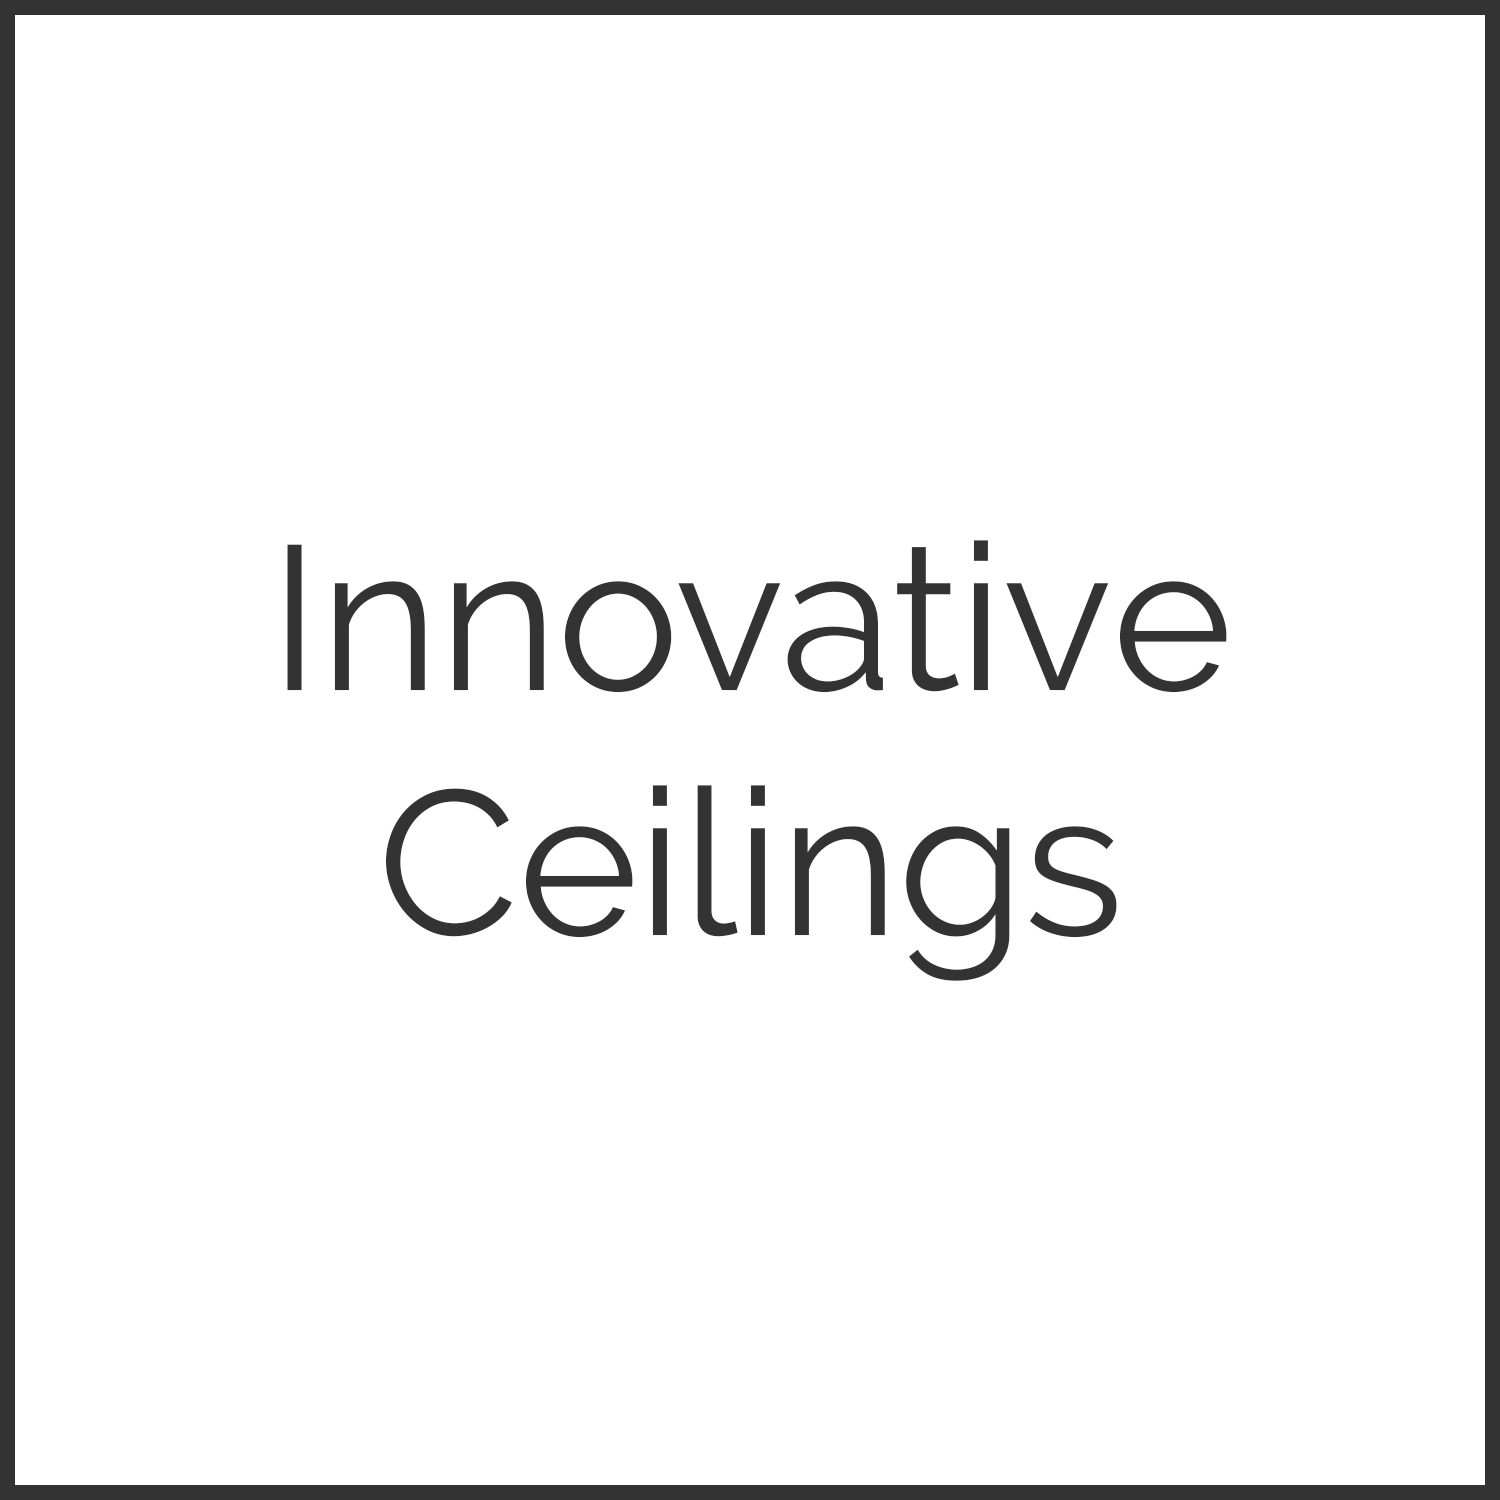 Innovative Ceilings